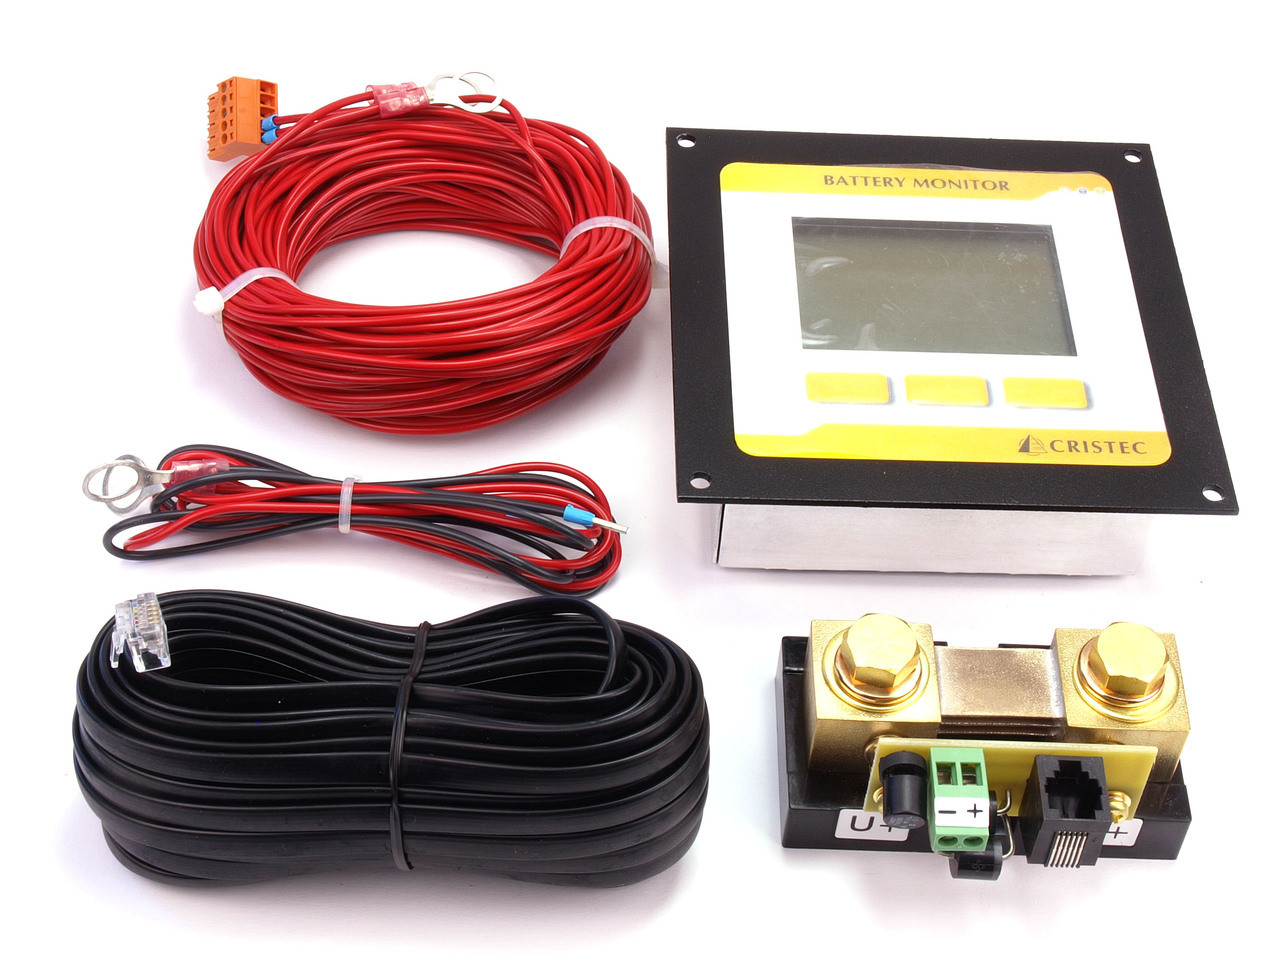 Battery Monitor Kit Contents